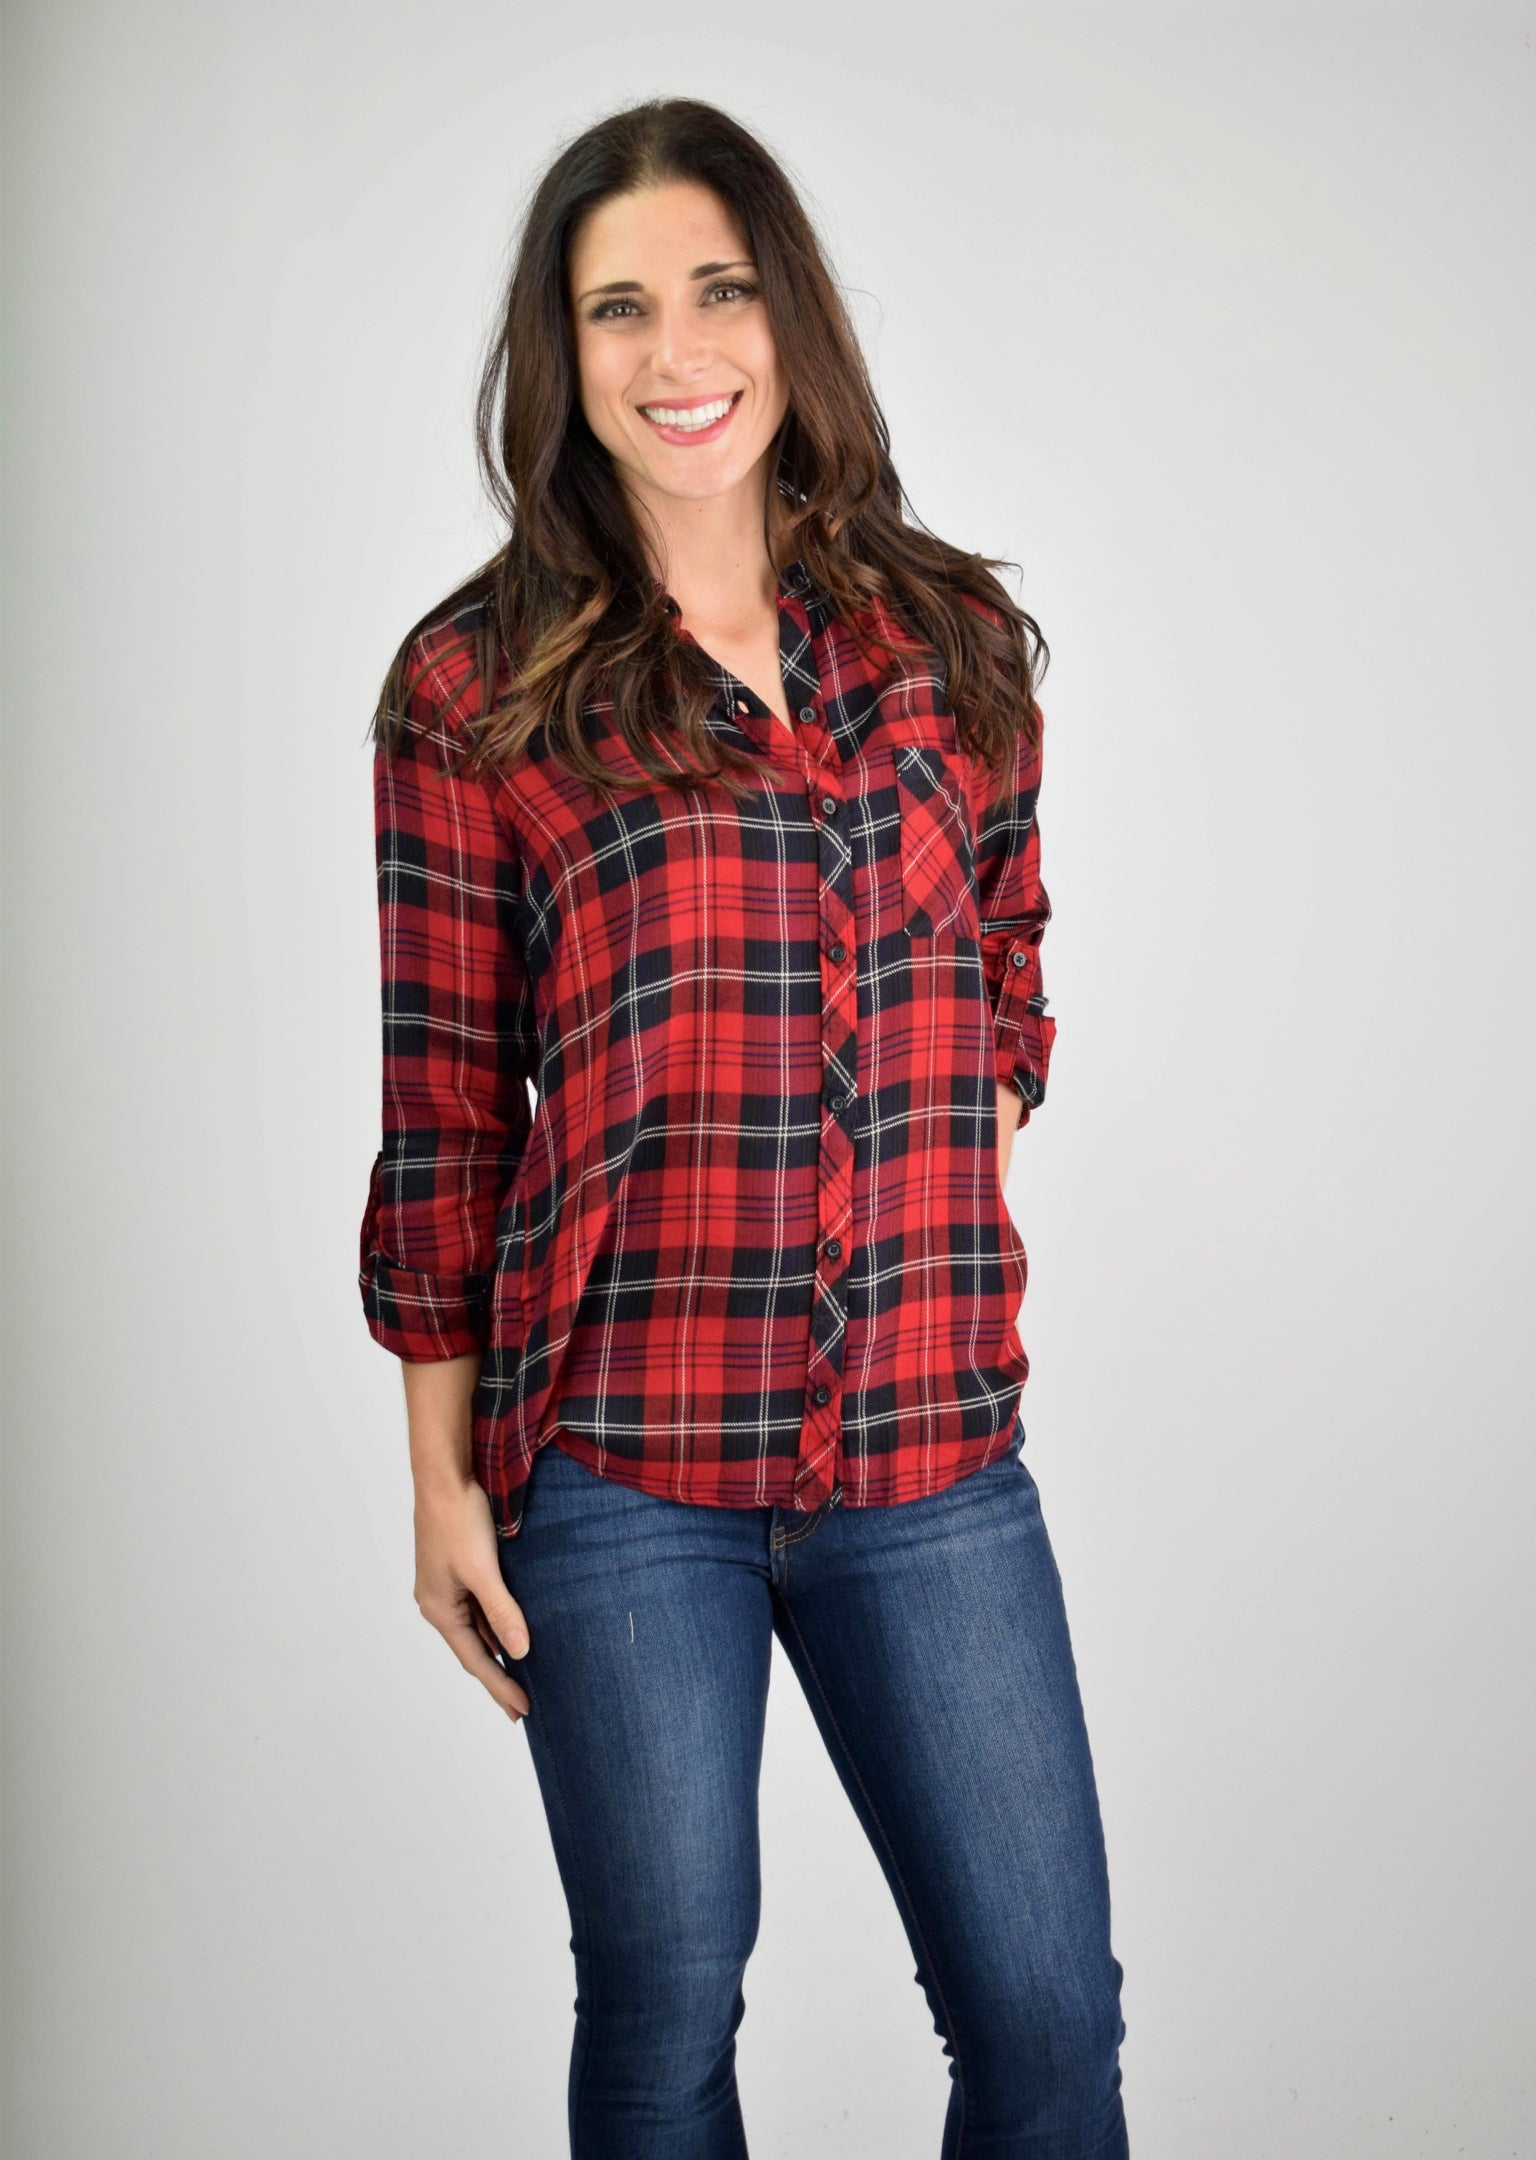 Friends Zone Red and Black Plaid Button Down Long Sleeve Top